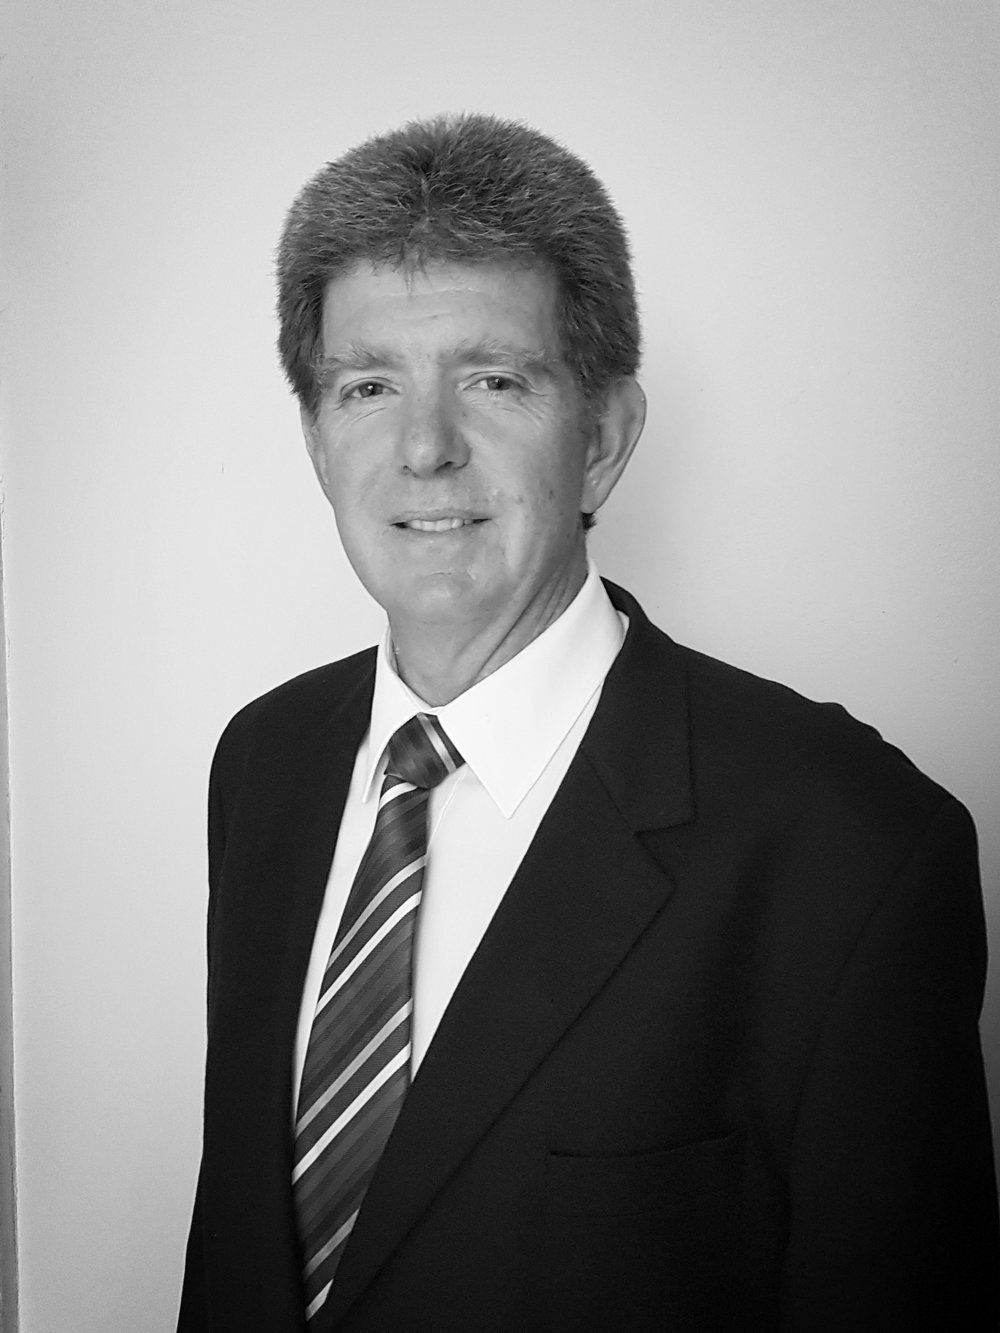 Leon du Plessis, Group Manager, PPC